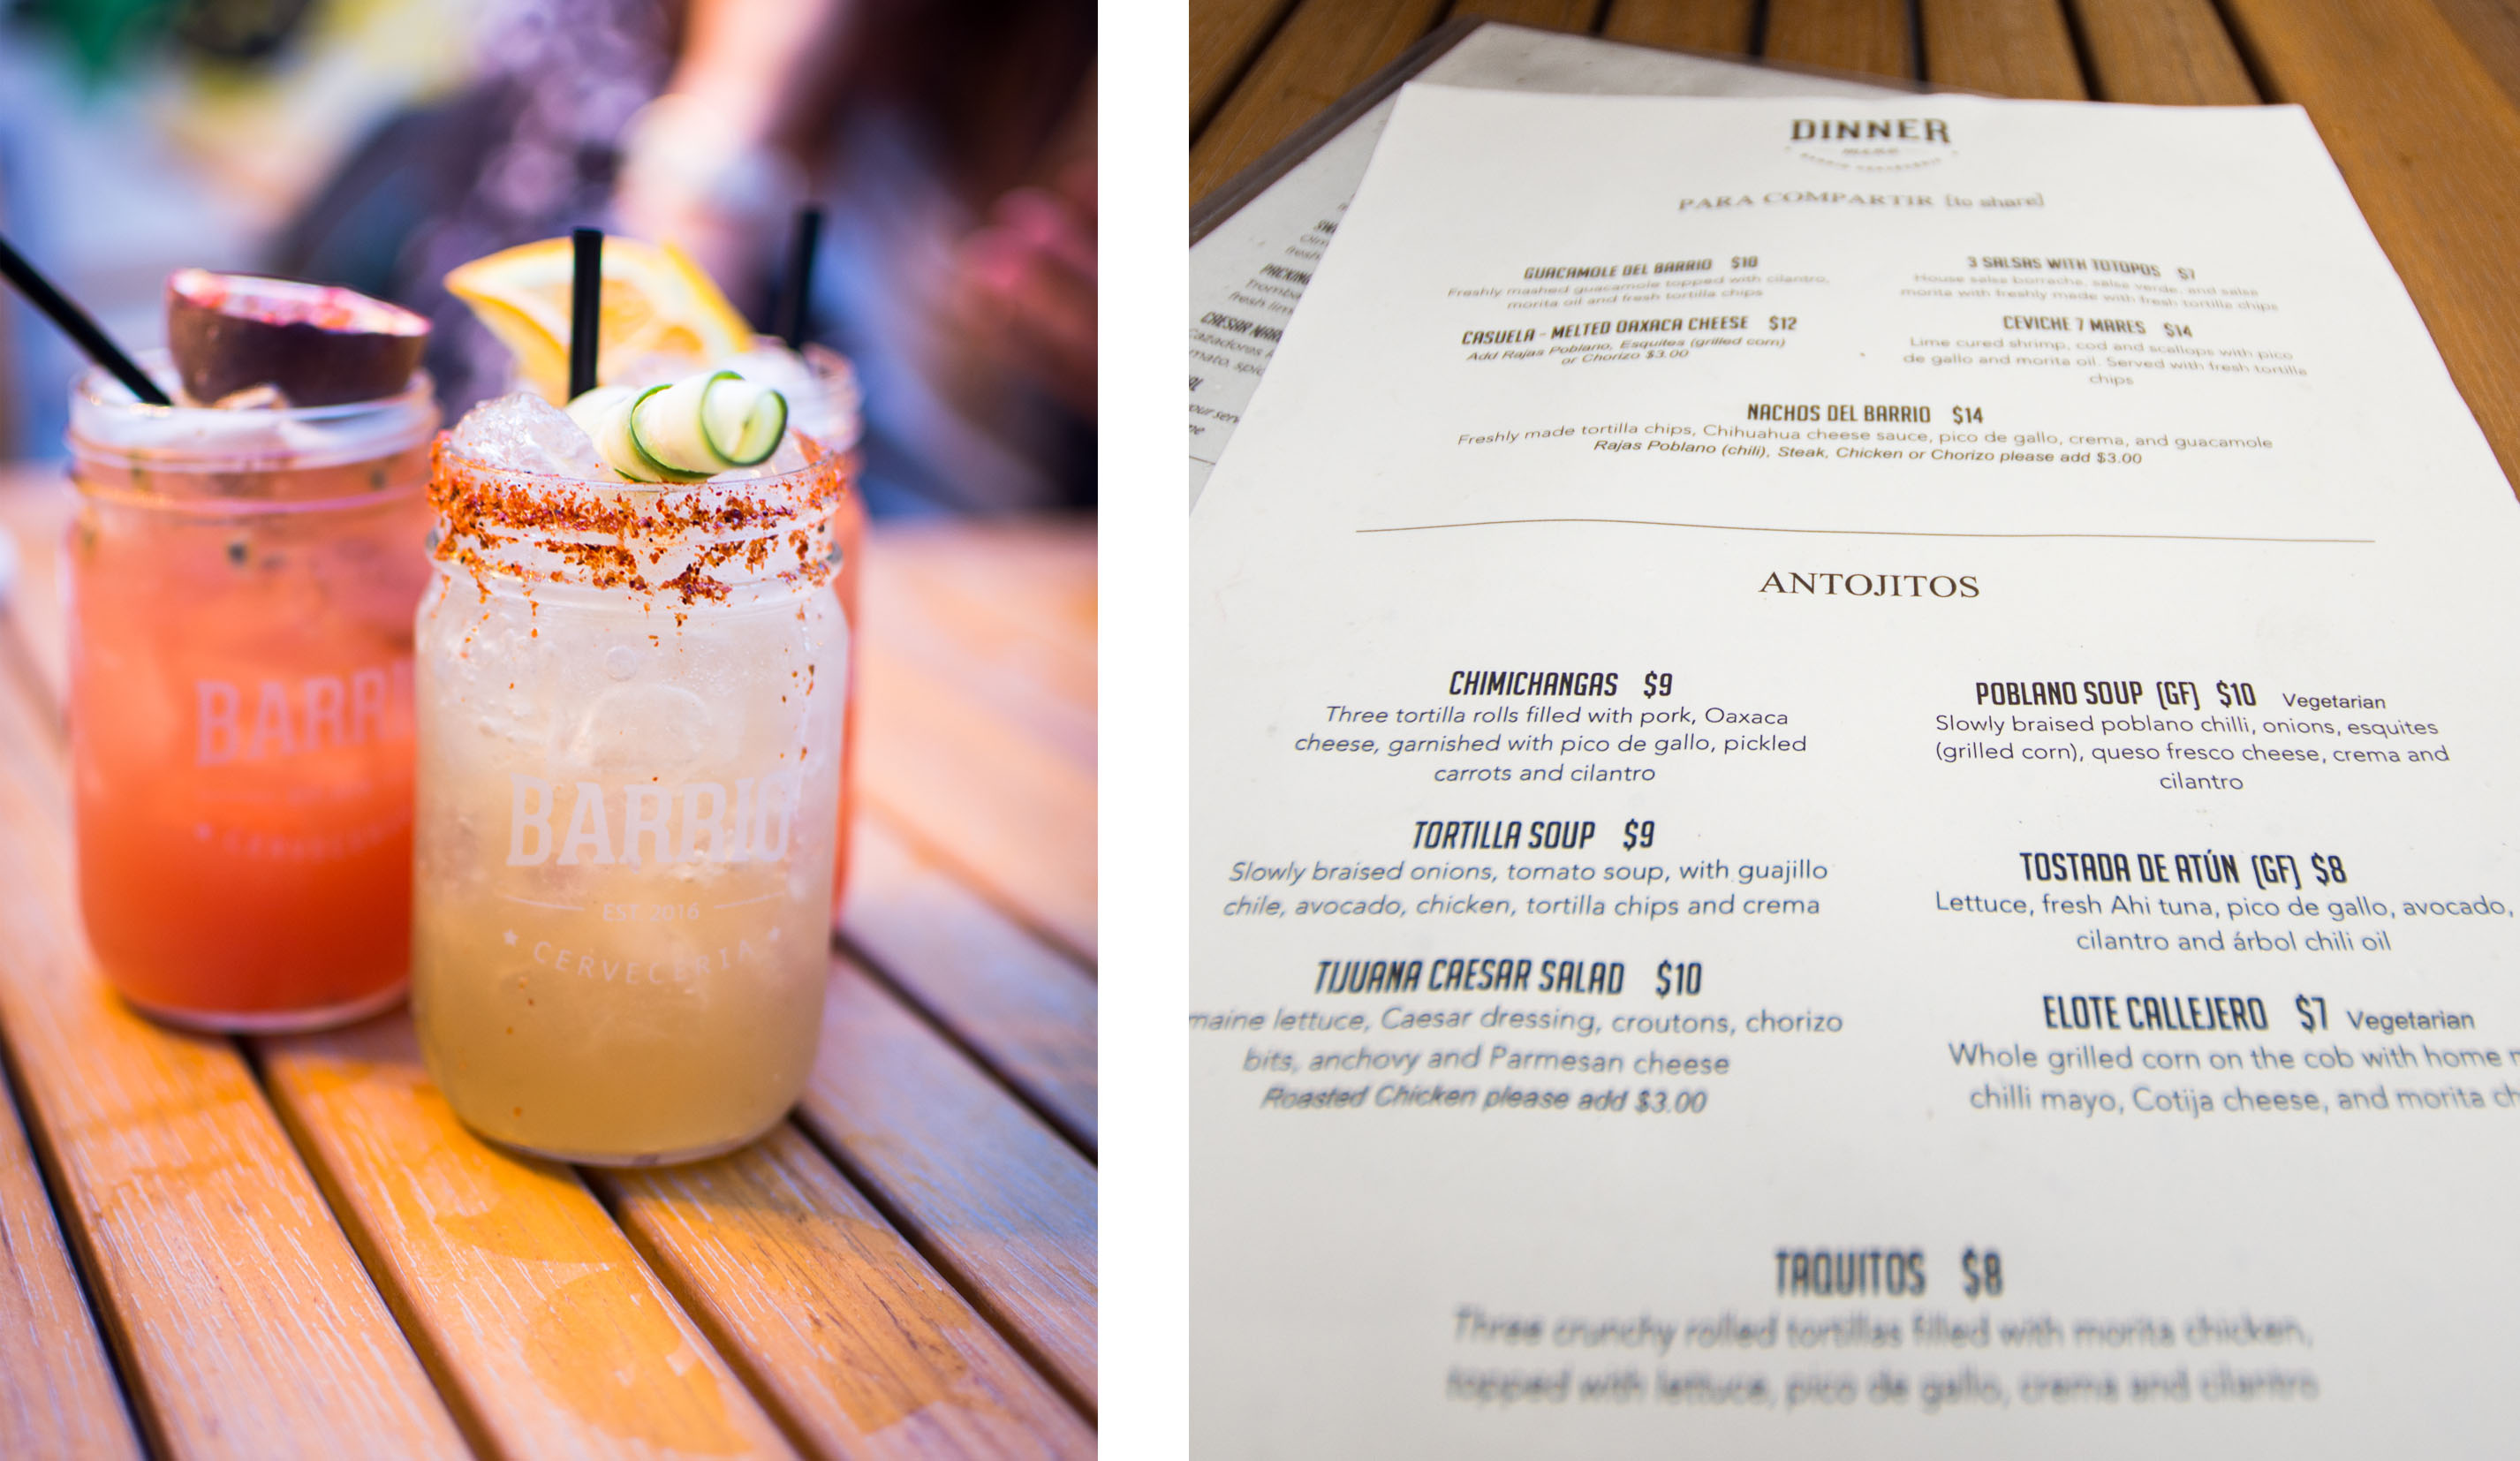 Barrio menu and their drinks